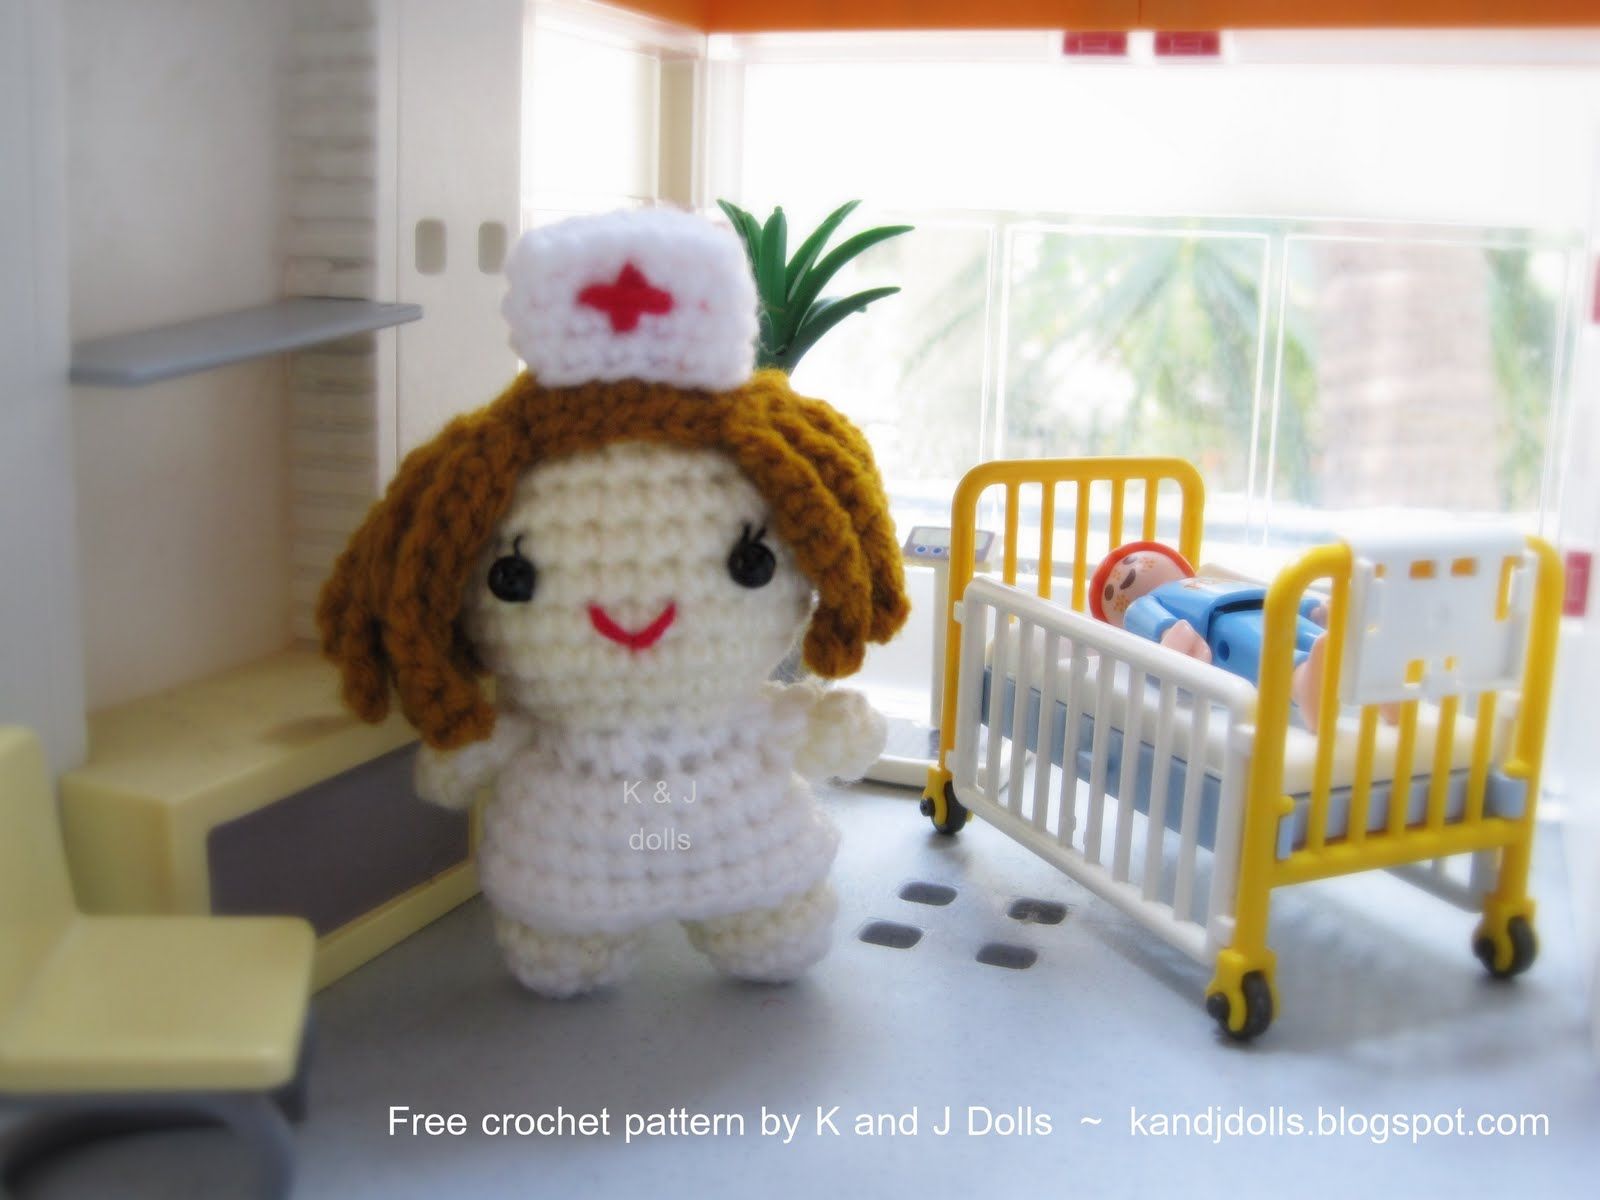 Free English Crochet Patterns Amigurumi submited images.